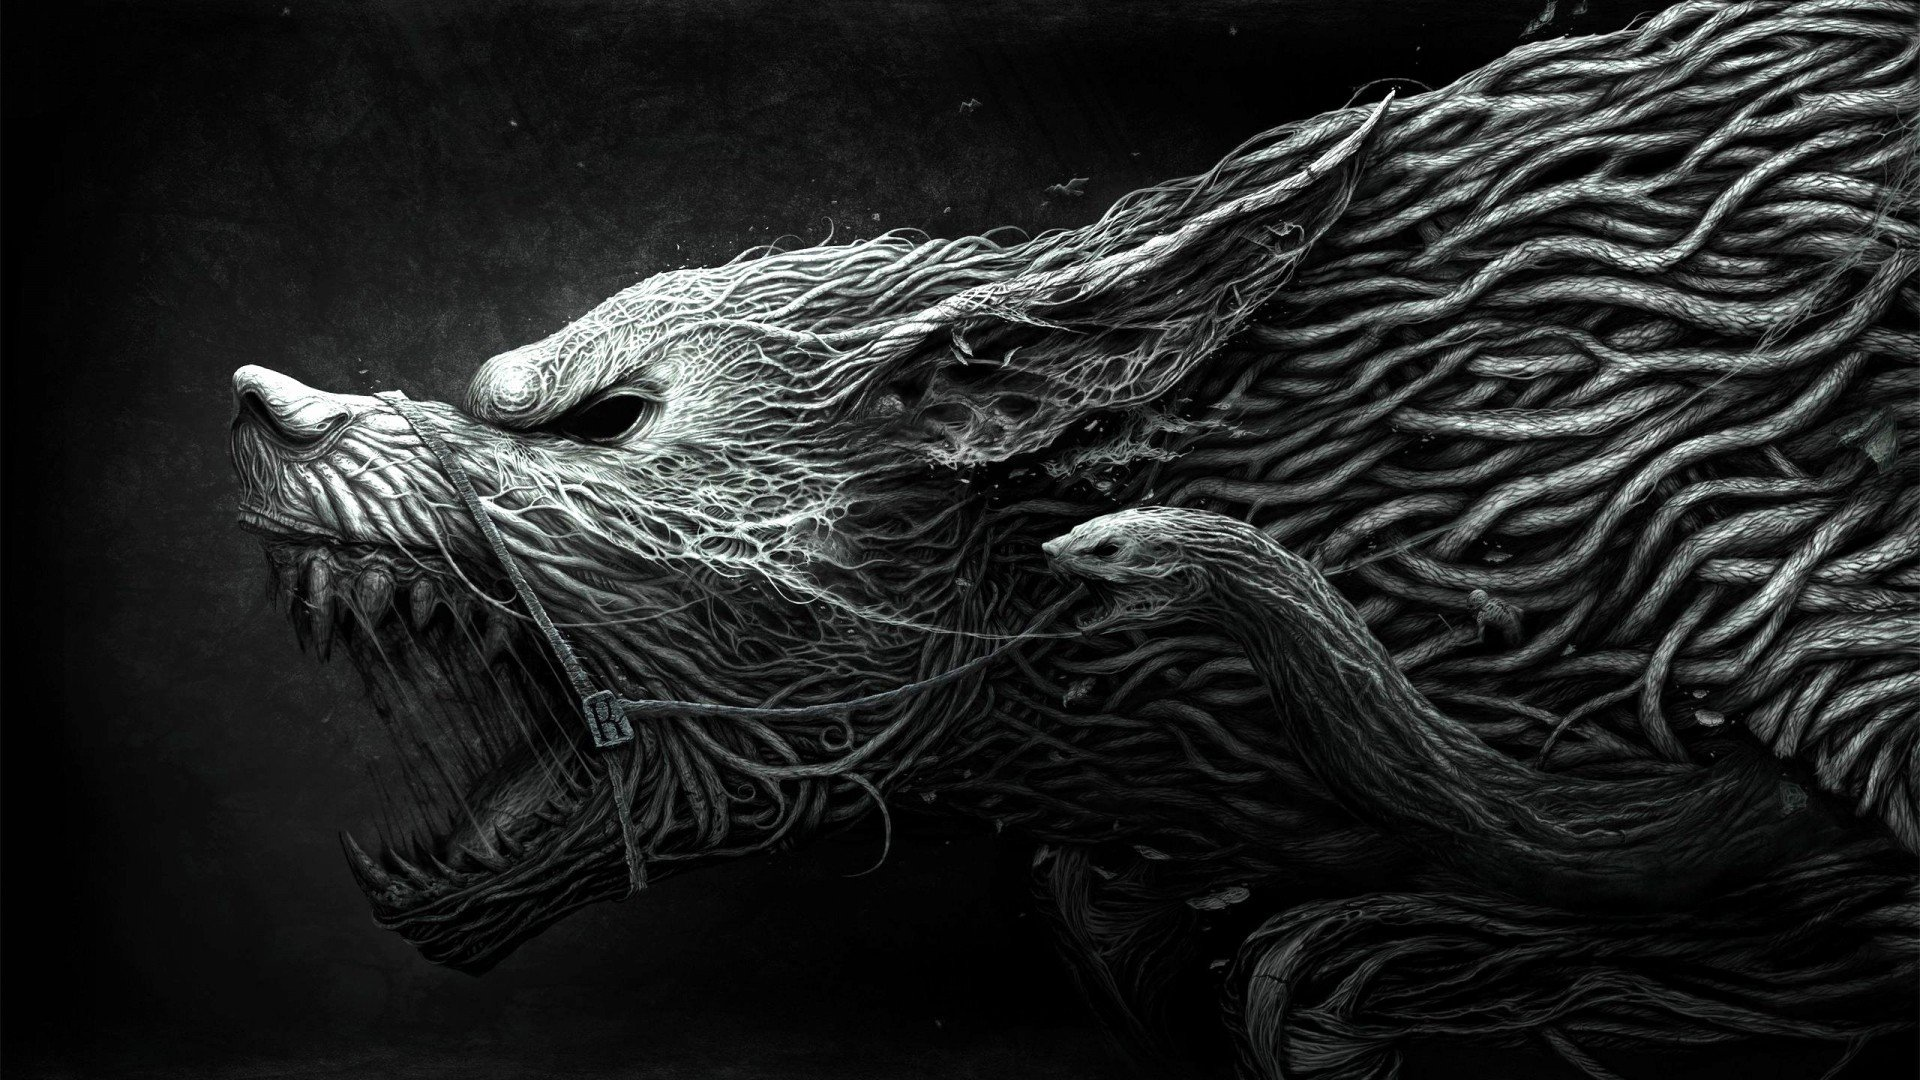 Wallpaper Wolf Hellhound art black and white dangerous noise 1920x1080